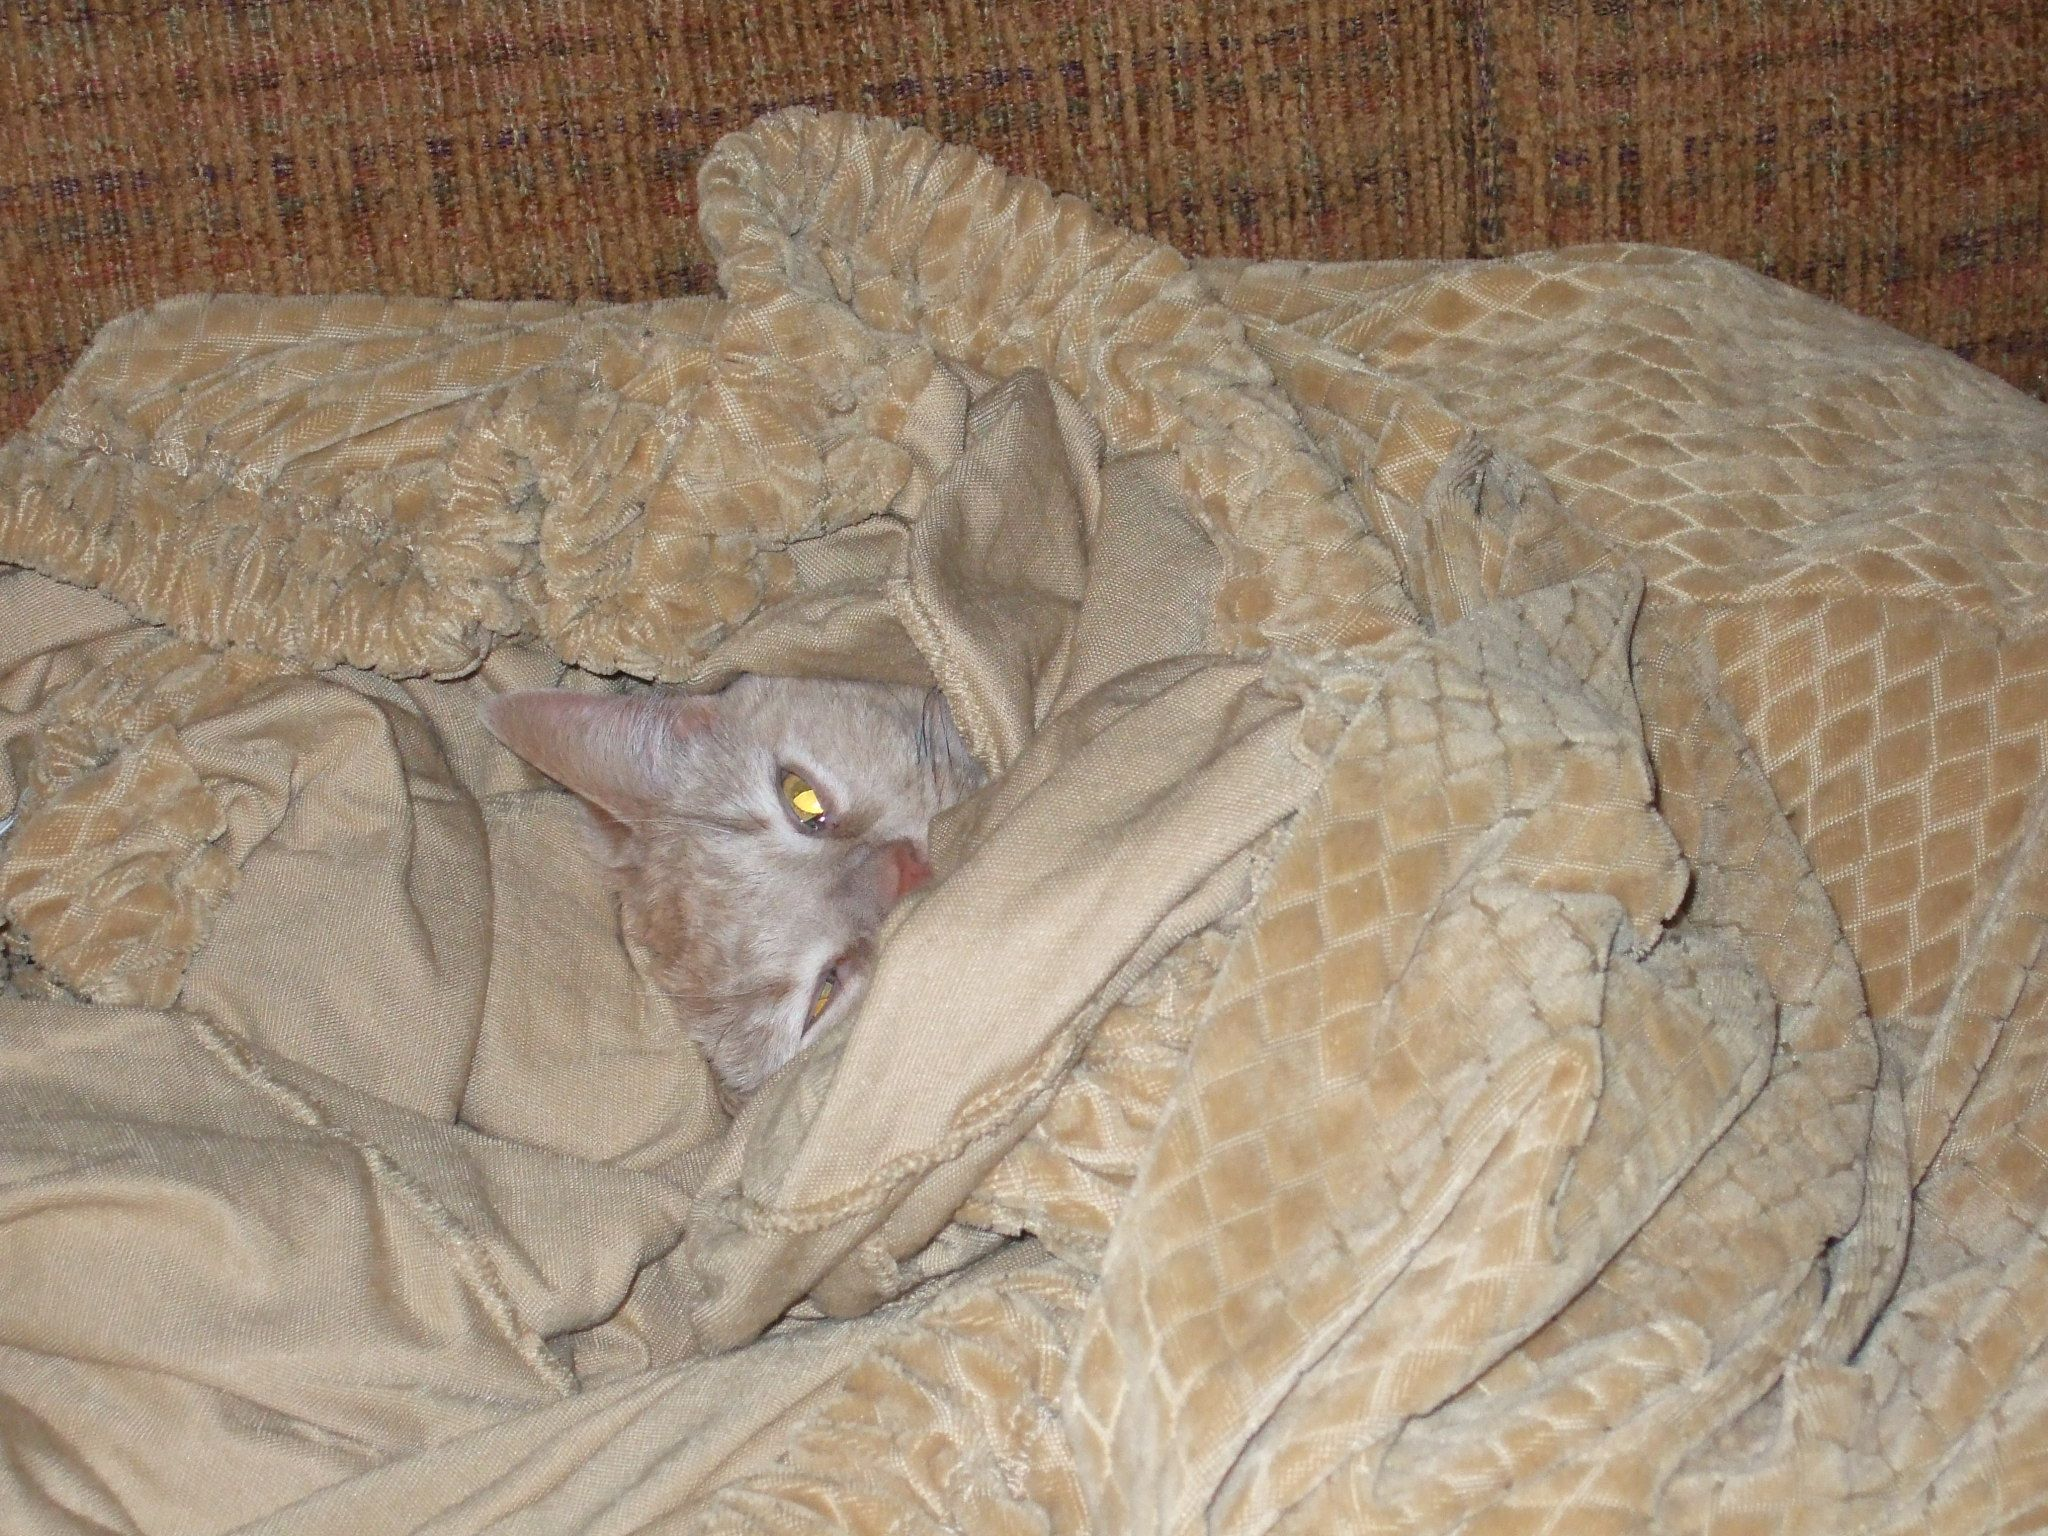 The epitome of cute! (Bob cuddled up in the freshly washed sofa cover.)